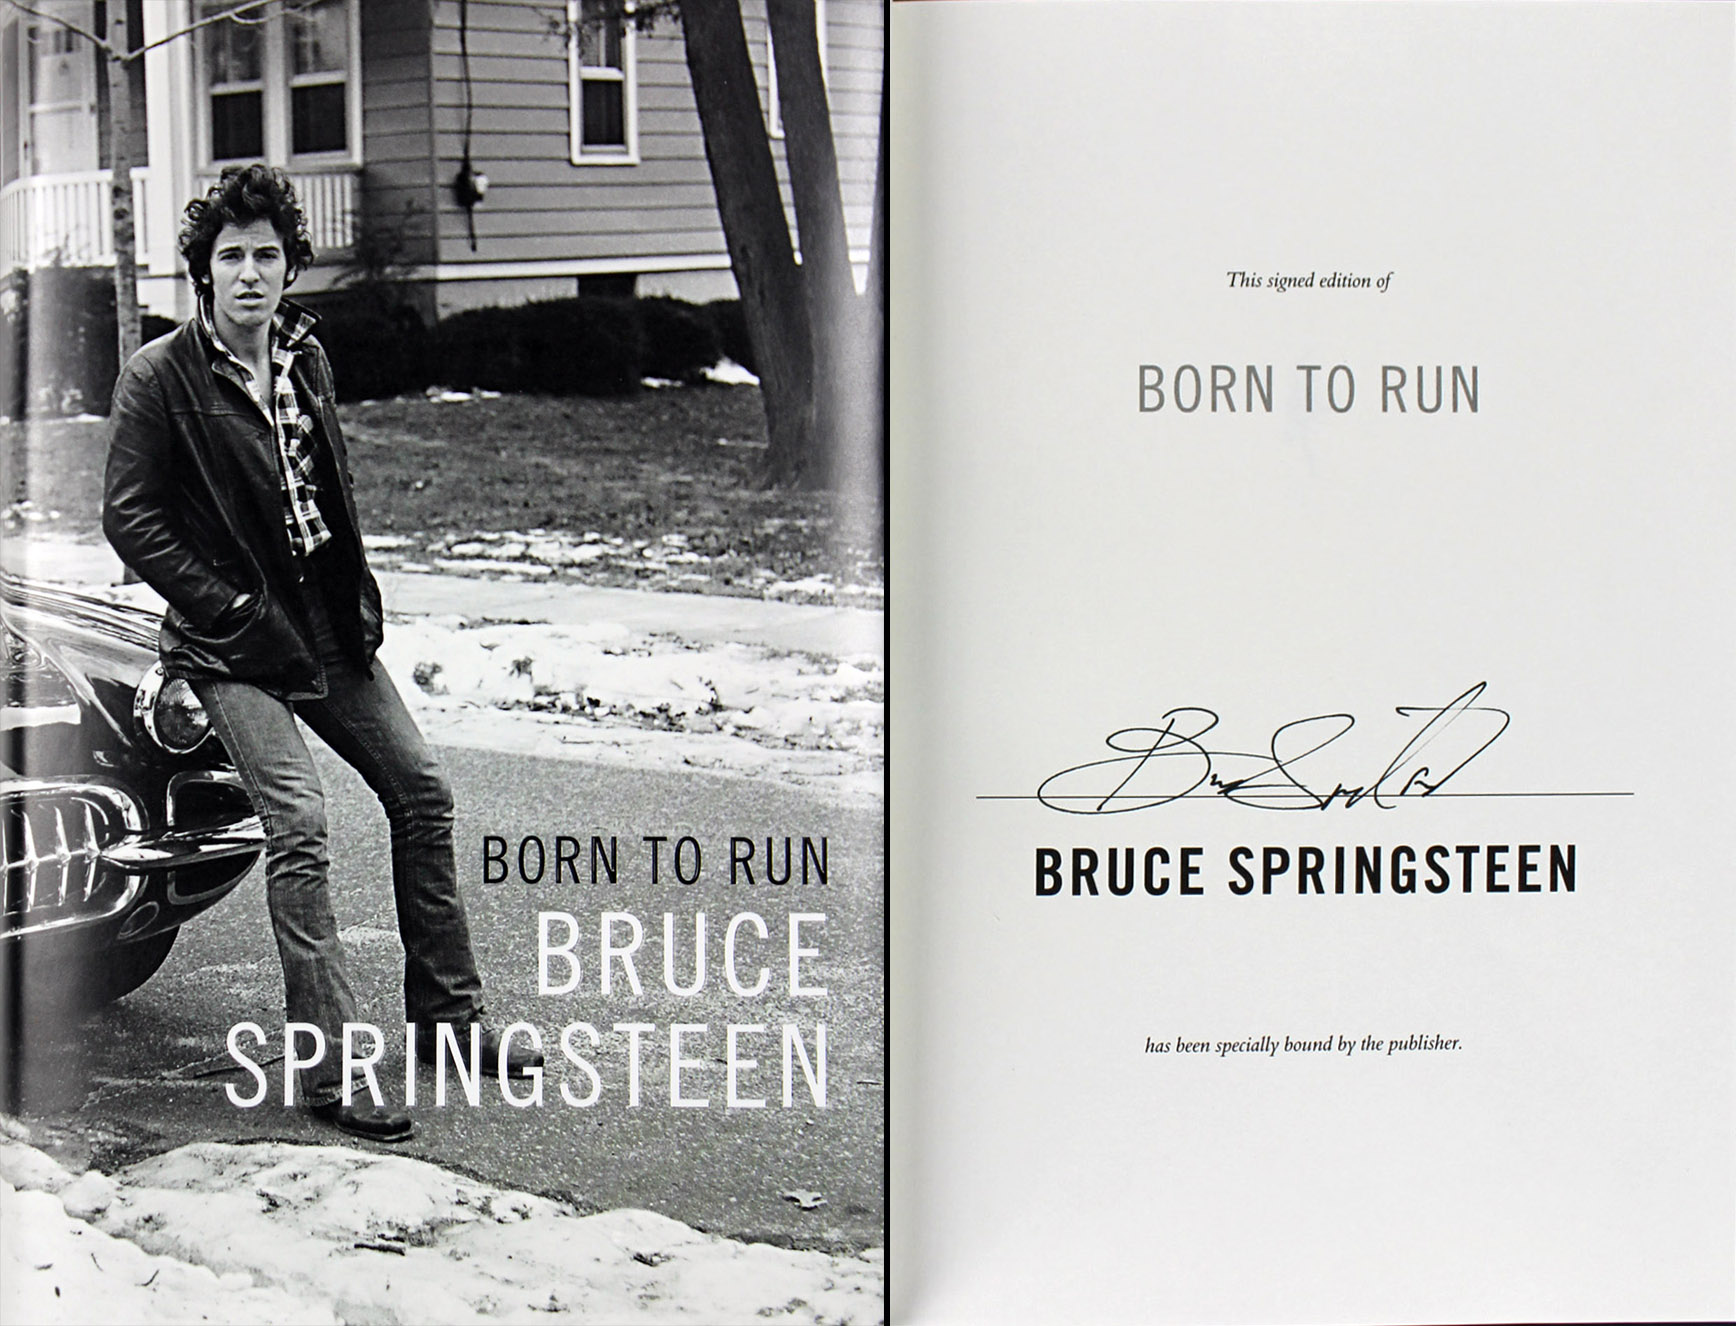 Book Review: Born to Run - Riding with the window down...